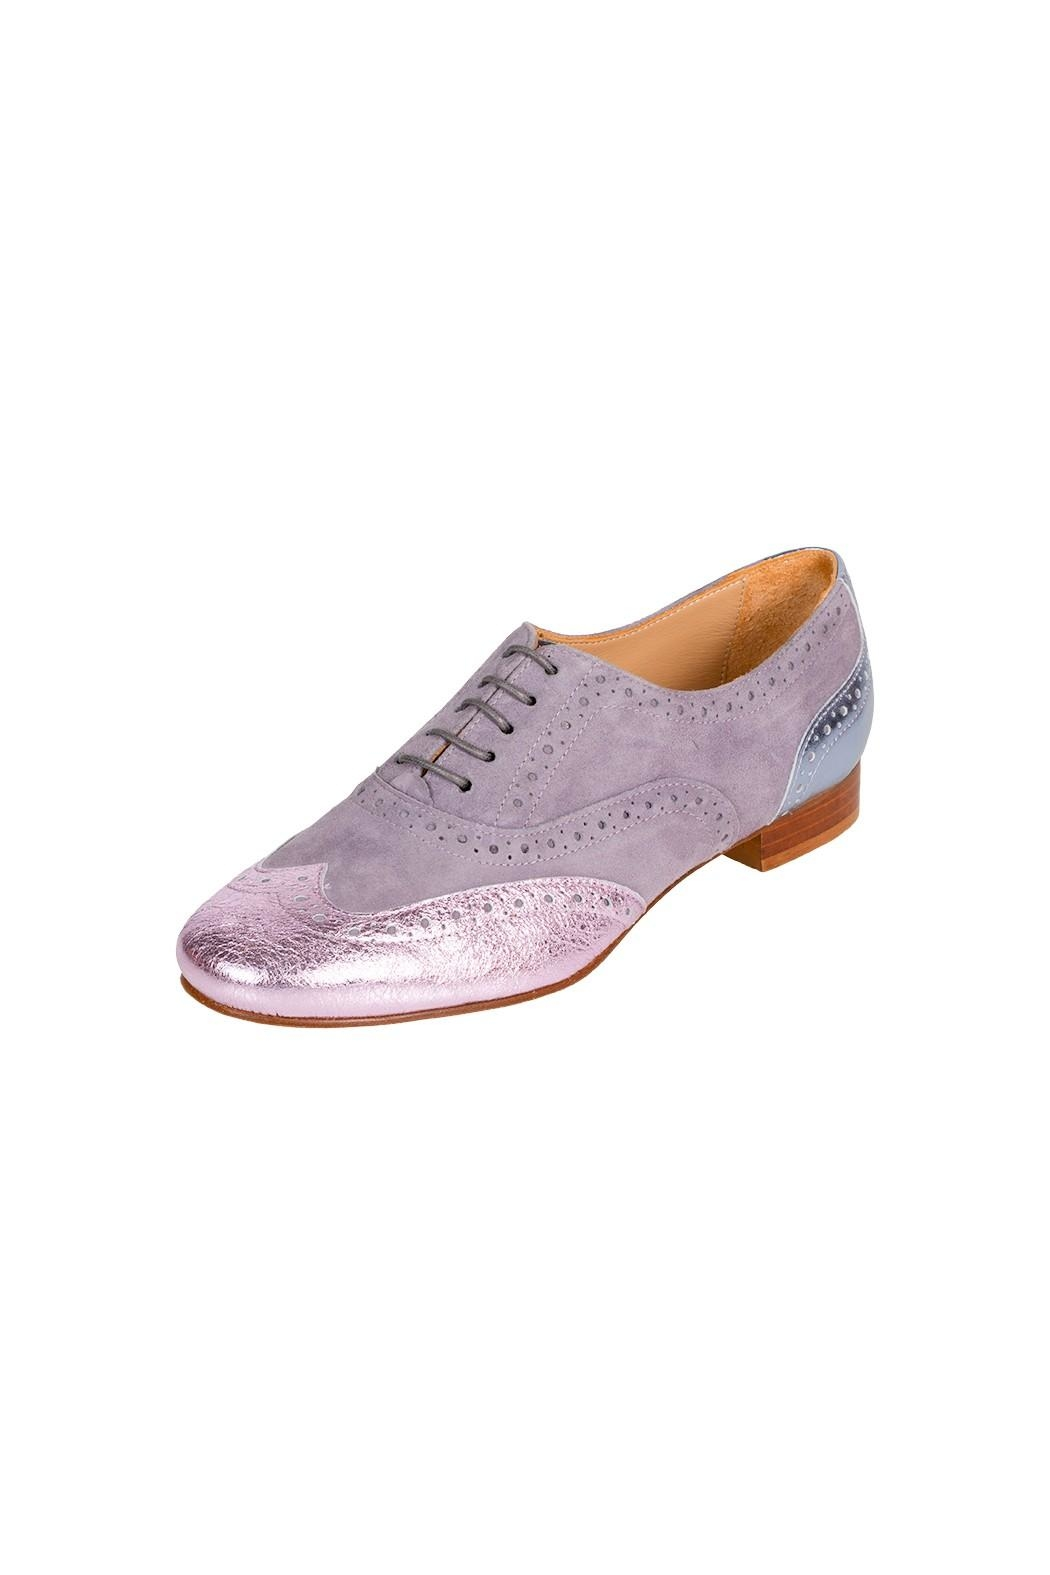 Pascucci Lilac-Leather Flat Brogue - Front Full Image